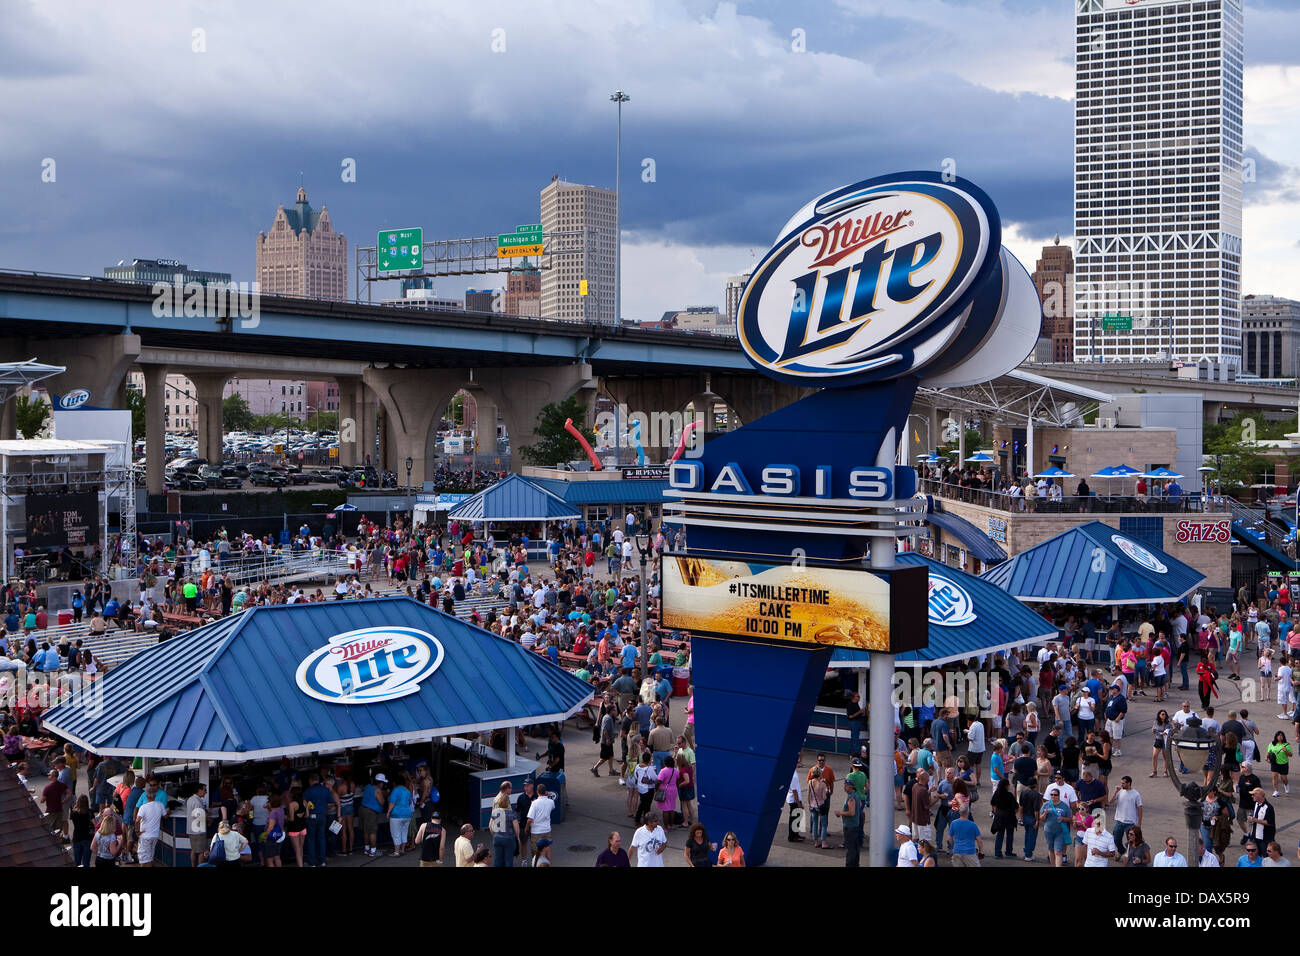 Miller Lite Oasis stage is seen on the Henry W. Maier Festival Park (Summerfest Grounds) in Milwaukee - Stock Image